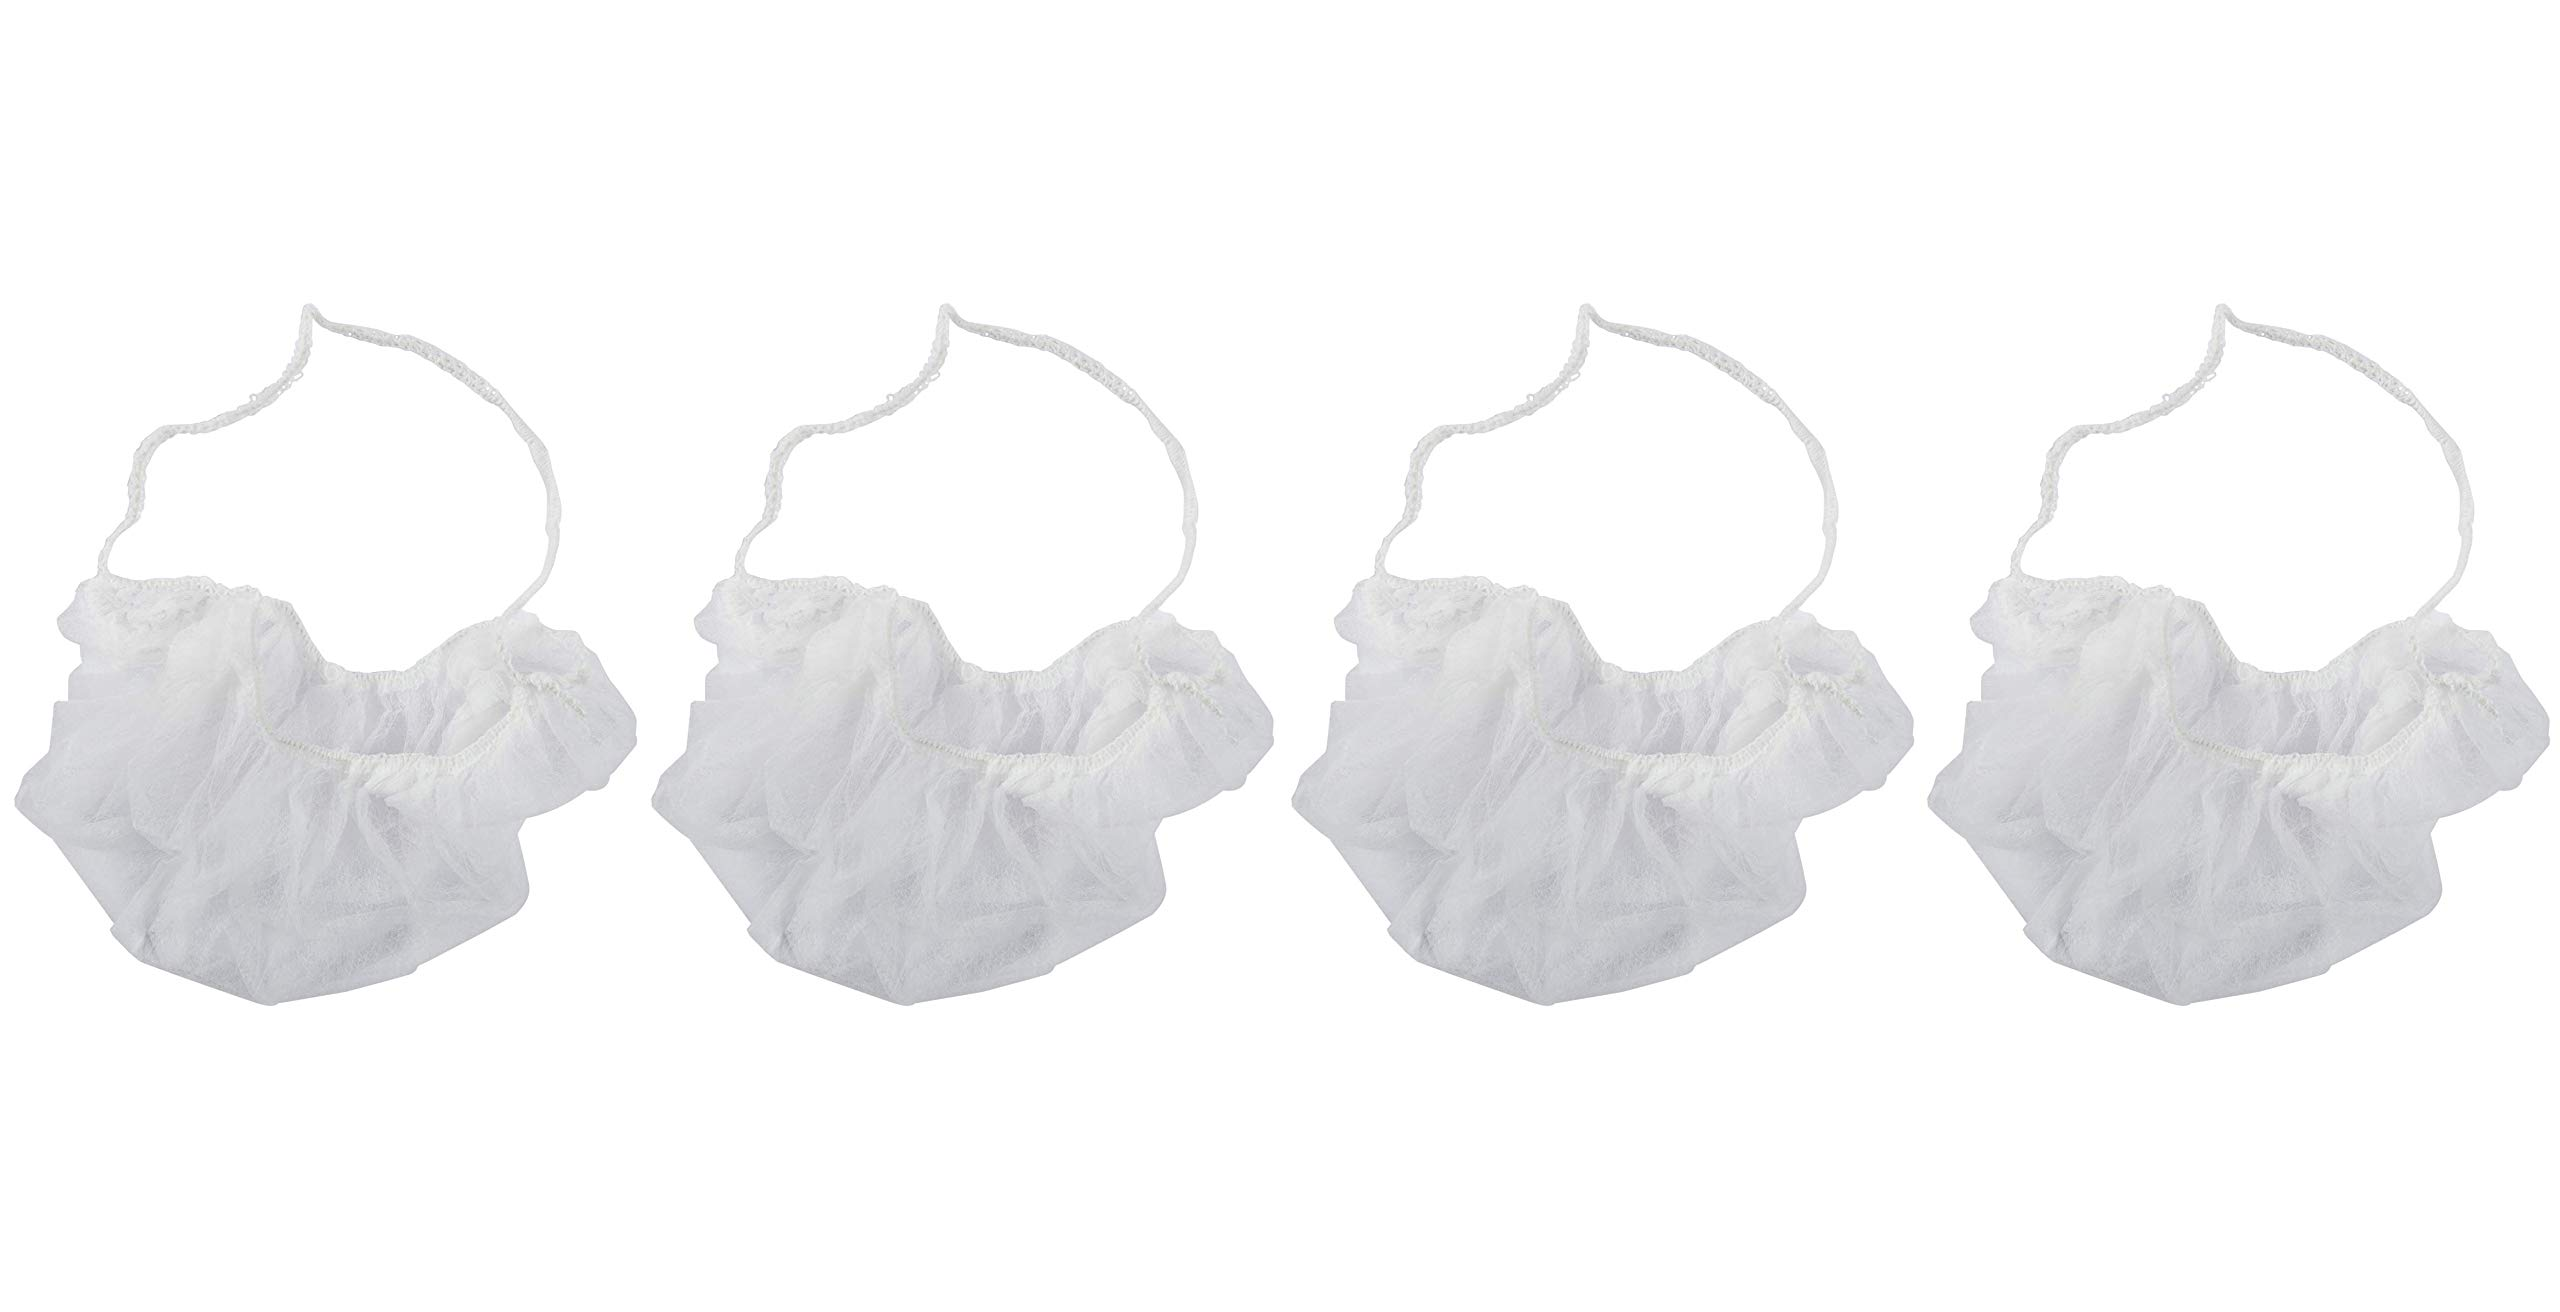 White Latex Free Polypropylene Beard Protector, Package of 100 (Fоur Paсk) by ROYAL